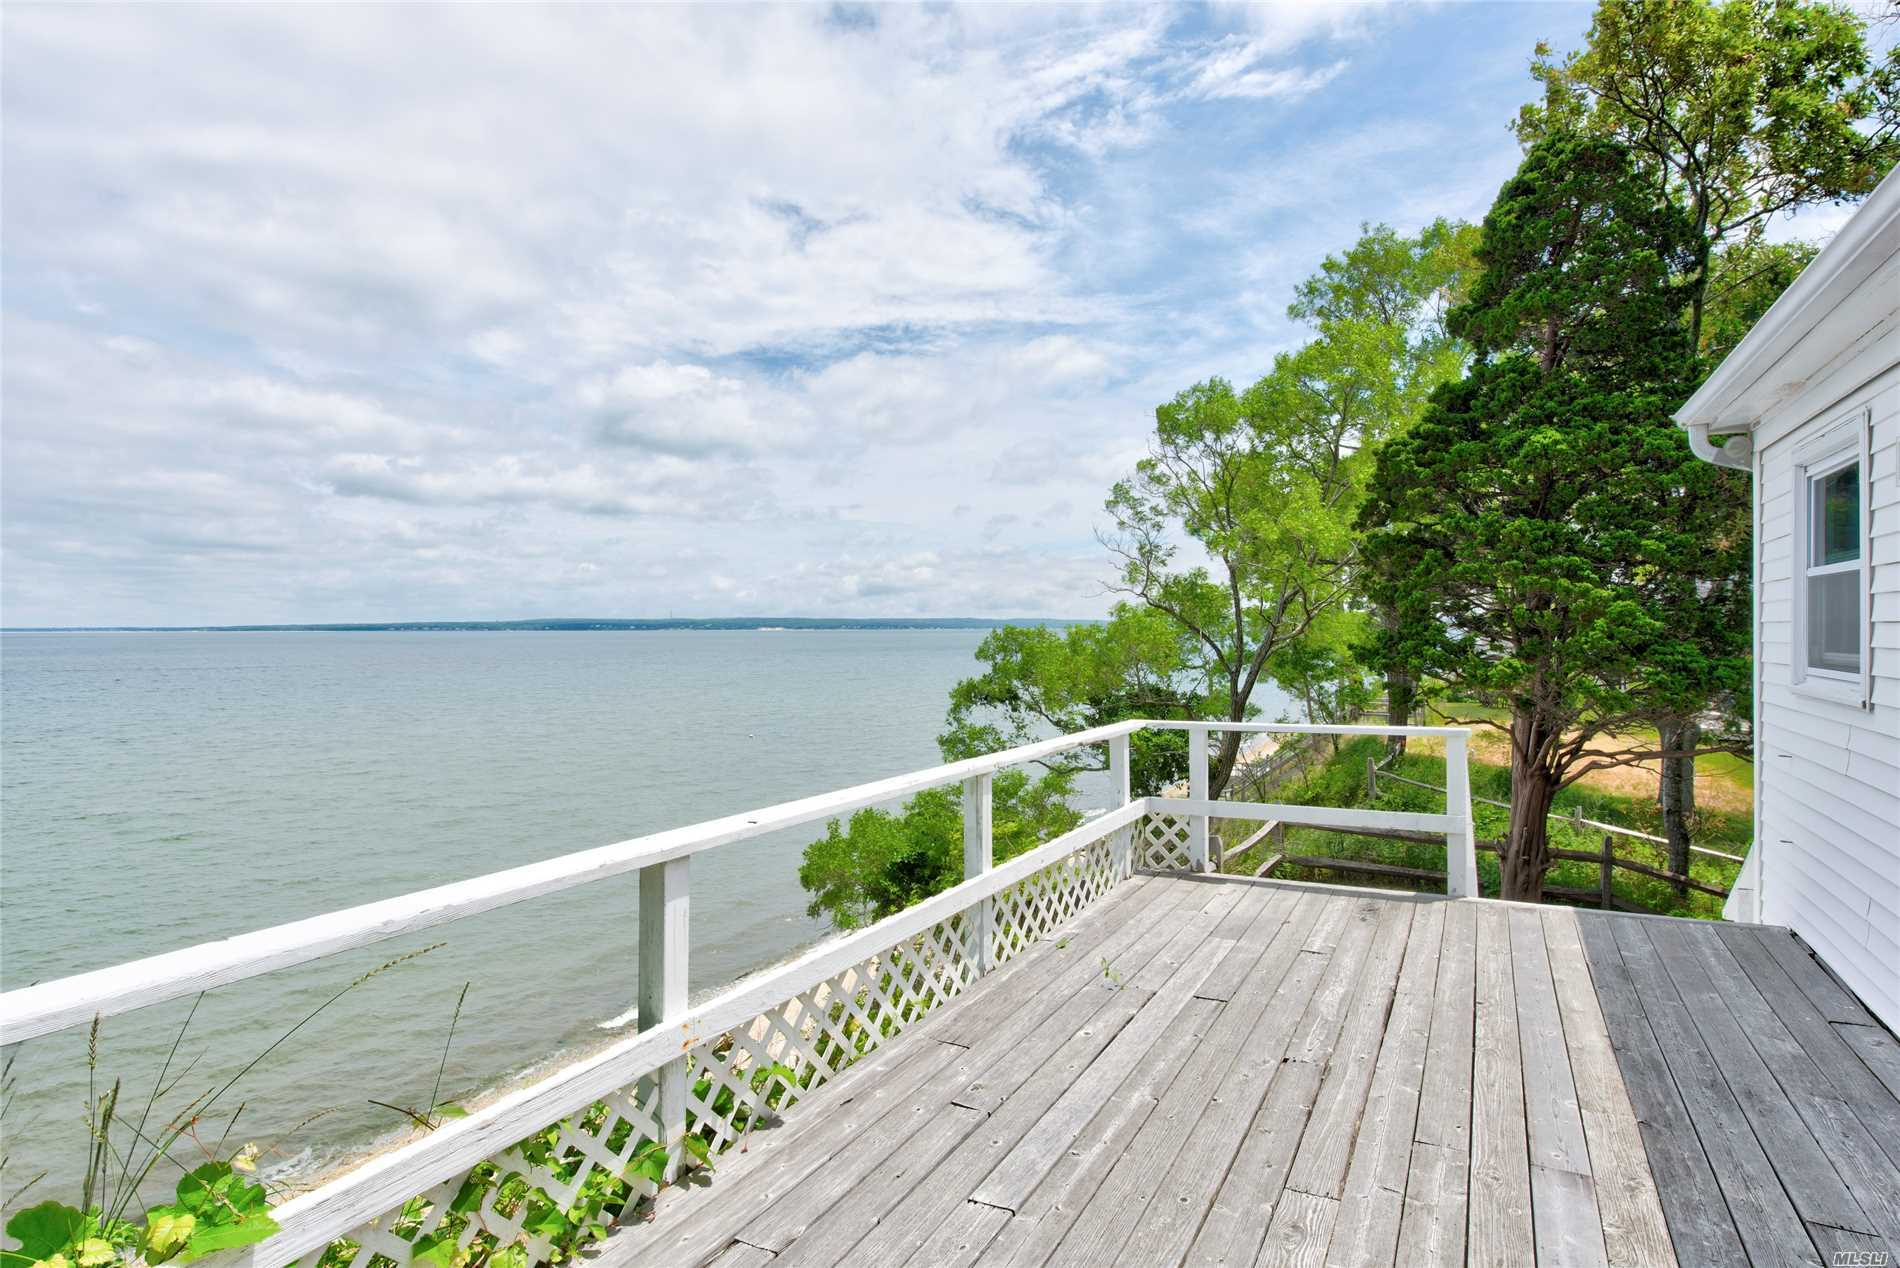 North fork Waterfront property with private Beach on Nassau Point, perfect for water sports, windsurfing, paddle boarding, swimming & canoeing. Main House plus guest house cottage all with direct access to beautiful Peconic bay.